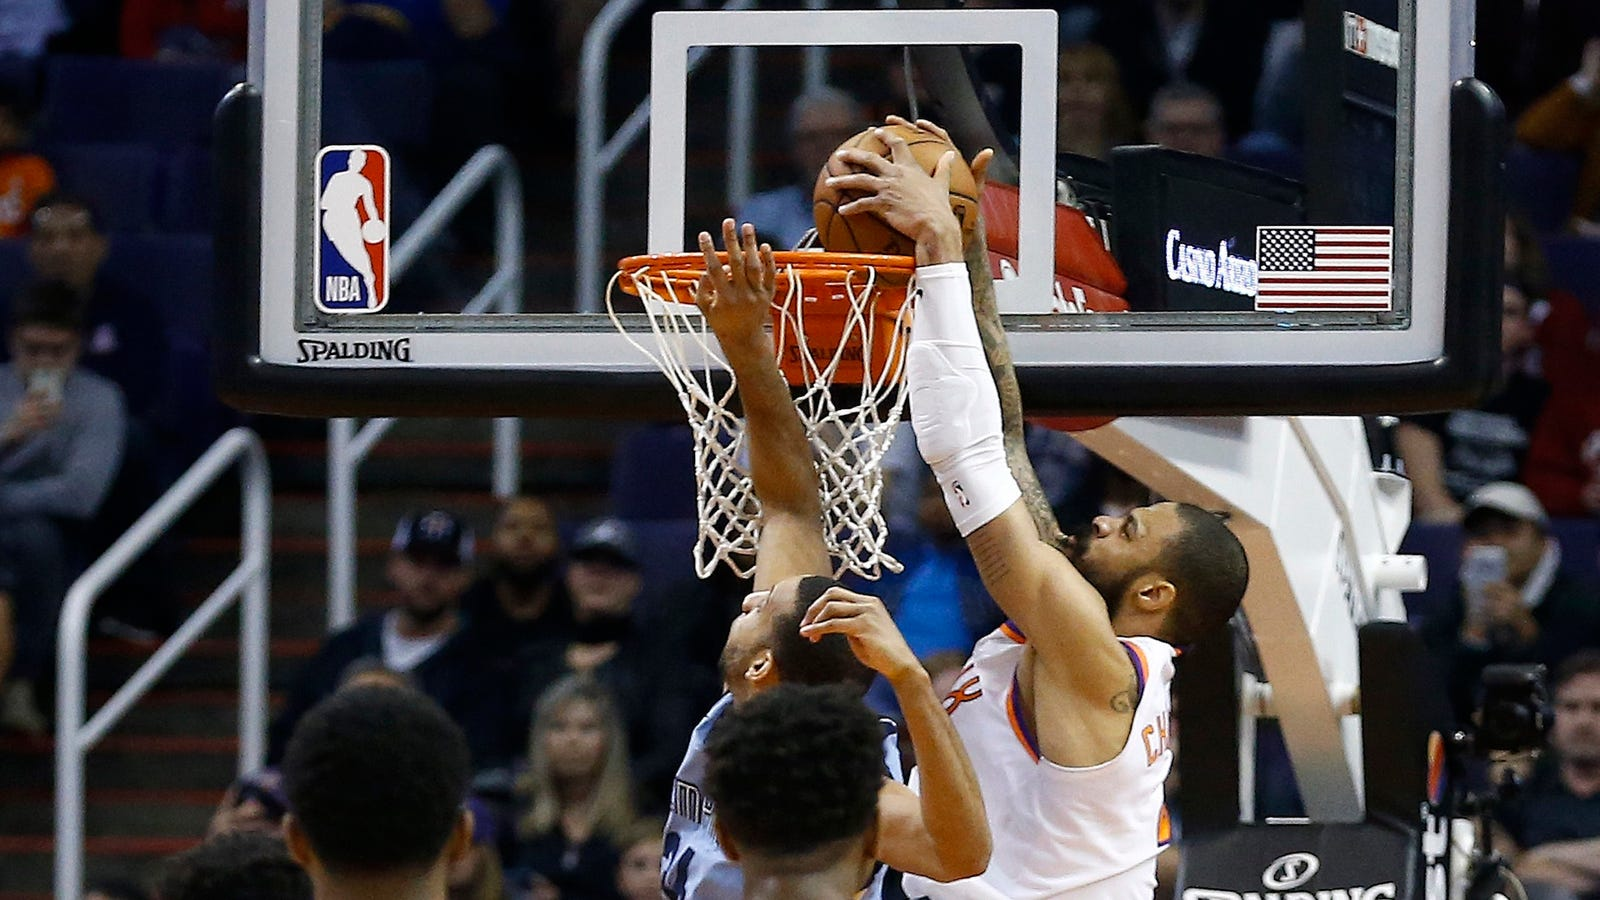 Tyson Chandler Dunks Off The Inbound Pass For Last-Second Win